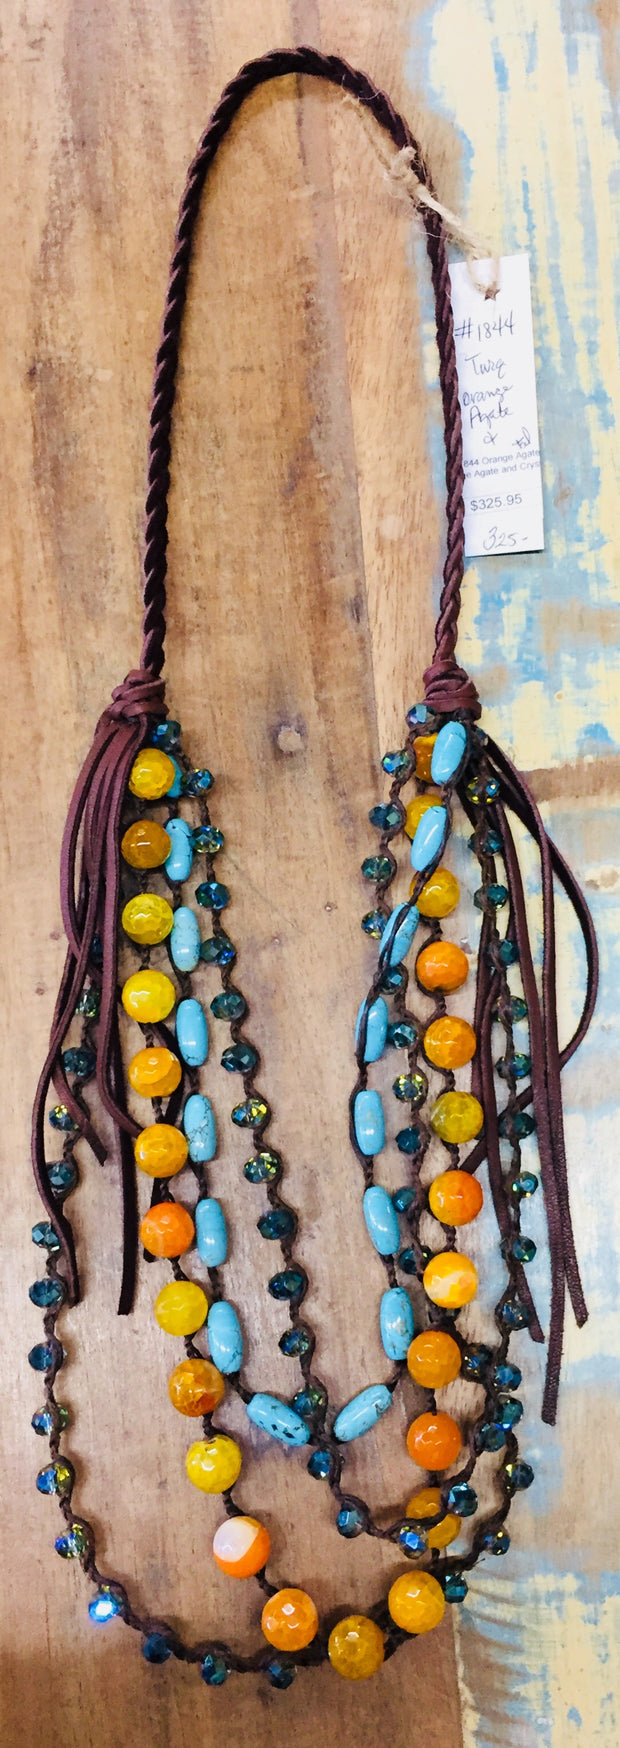 Orange & Turquoise Agate Necklace